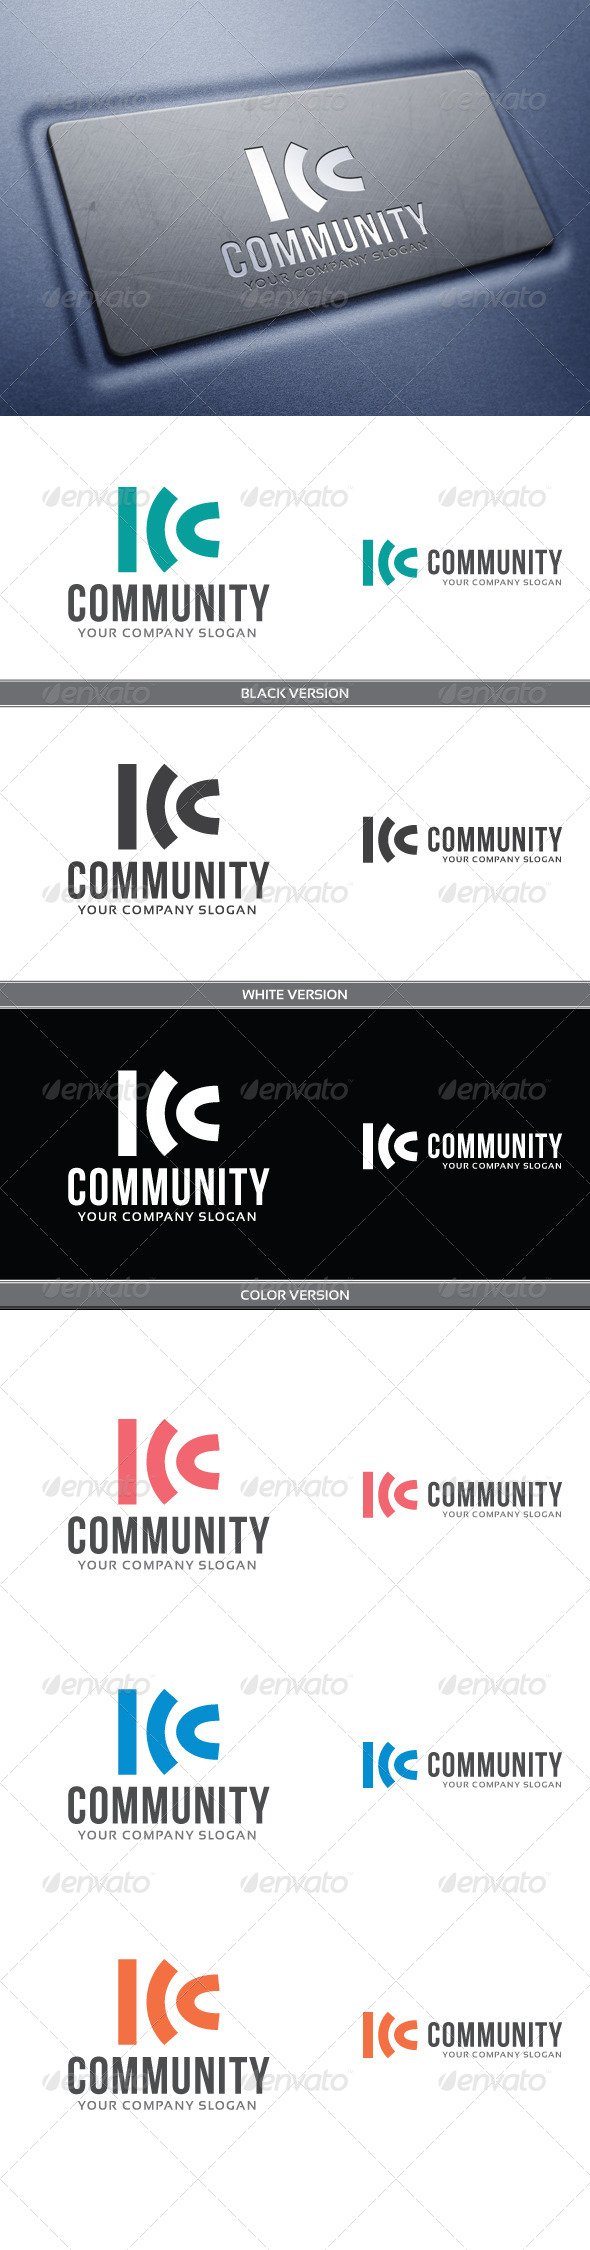 Community - Abstract Logo Templates